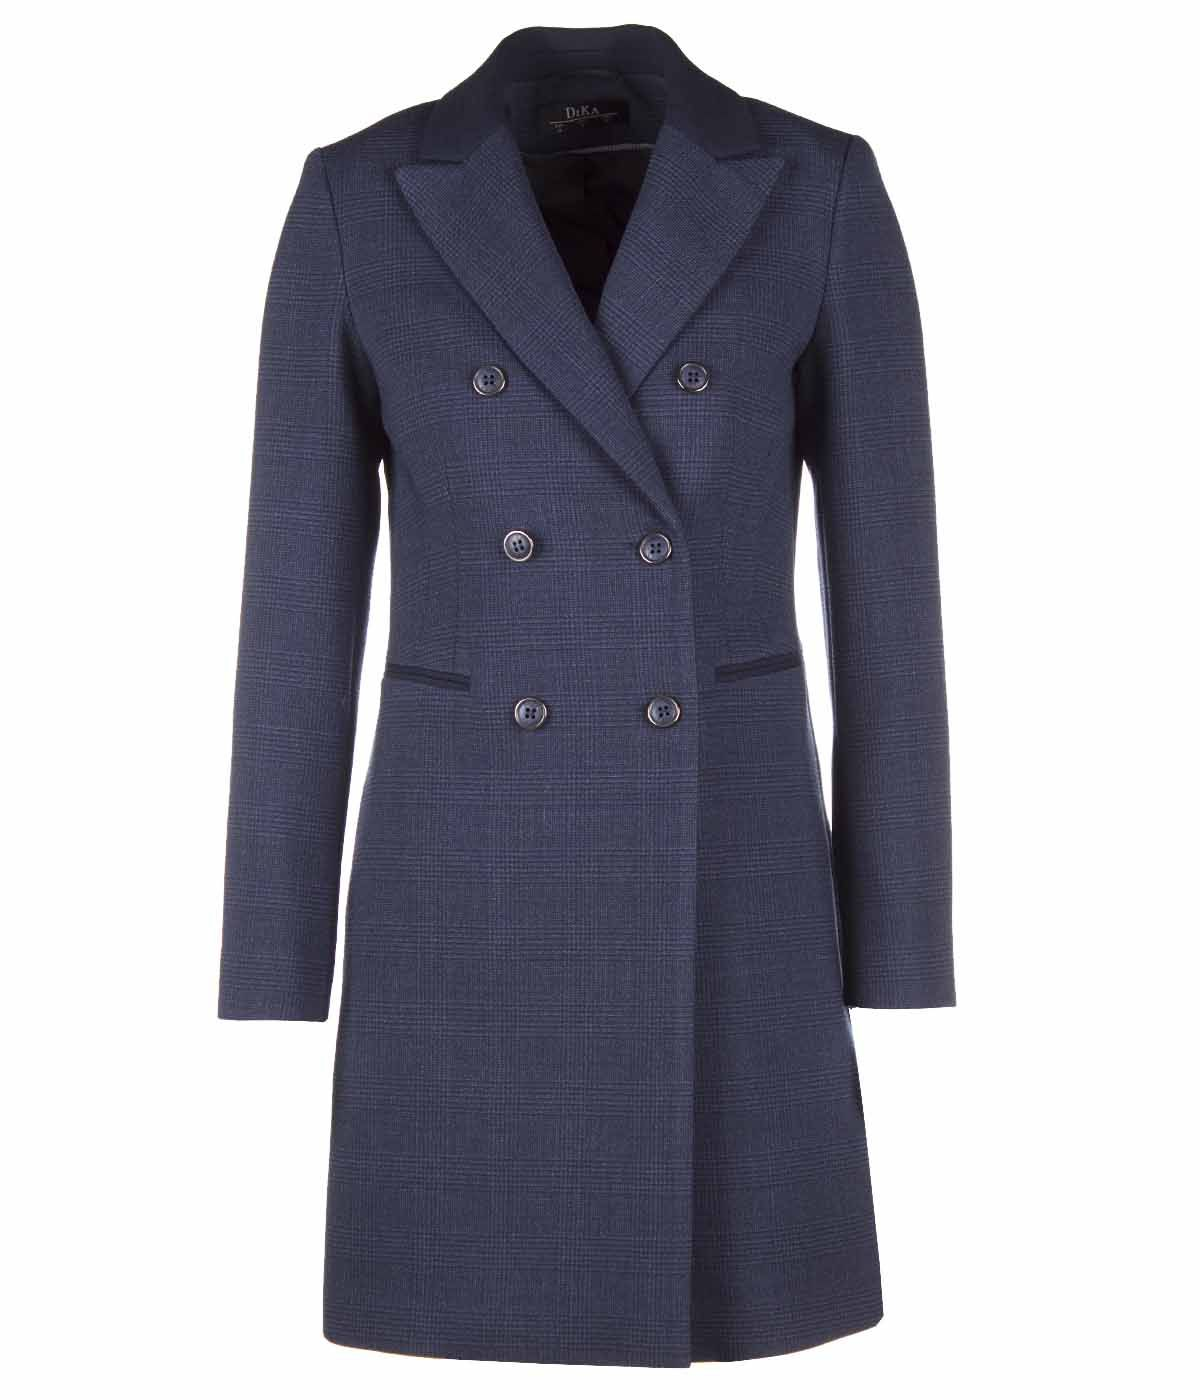 DARK BLUE DOUBLE BREASTED COAT 0